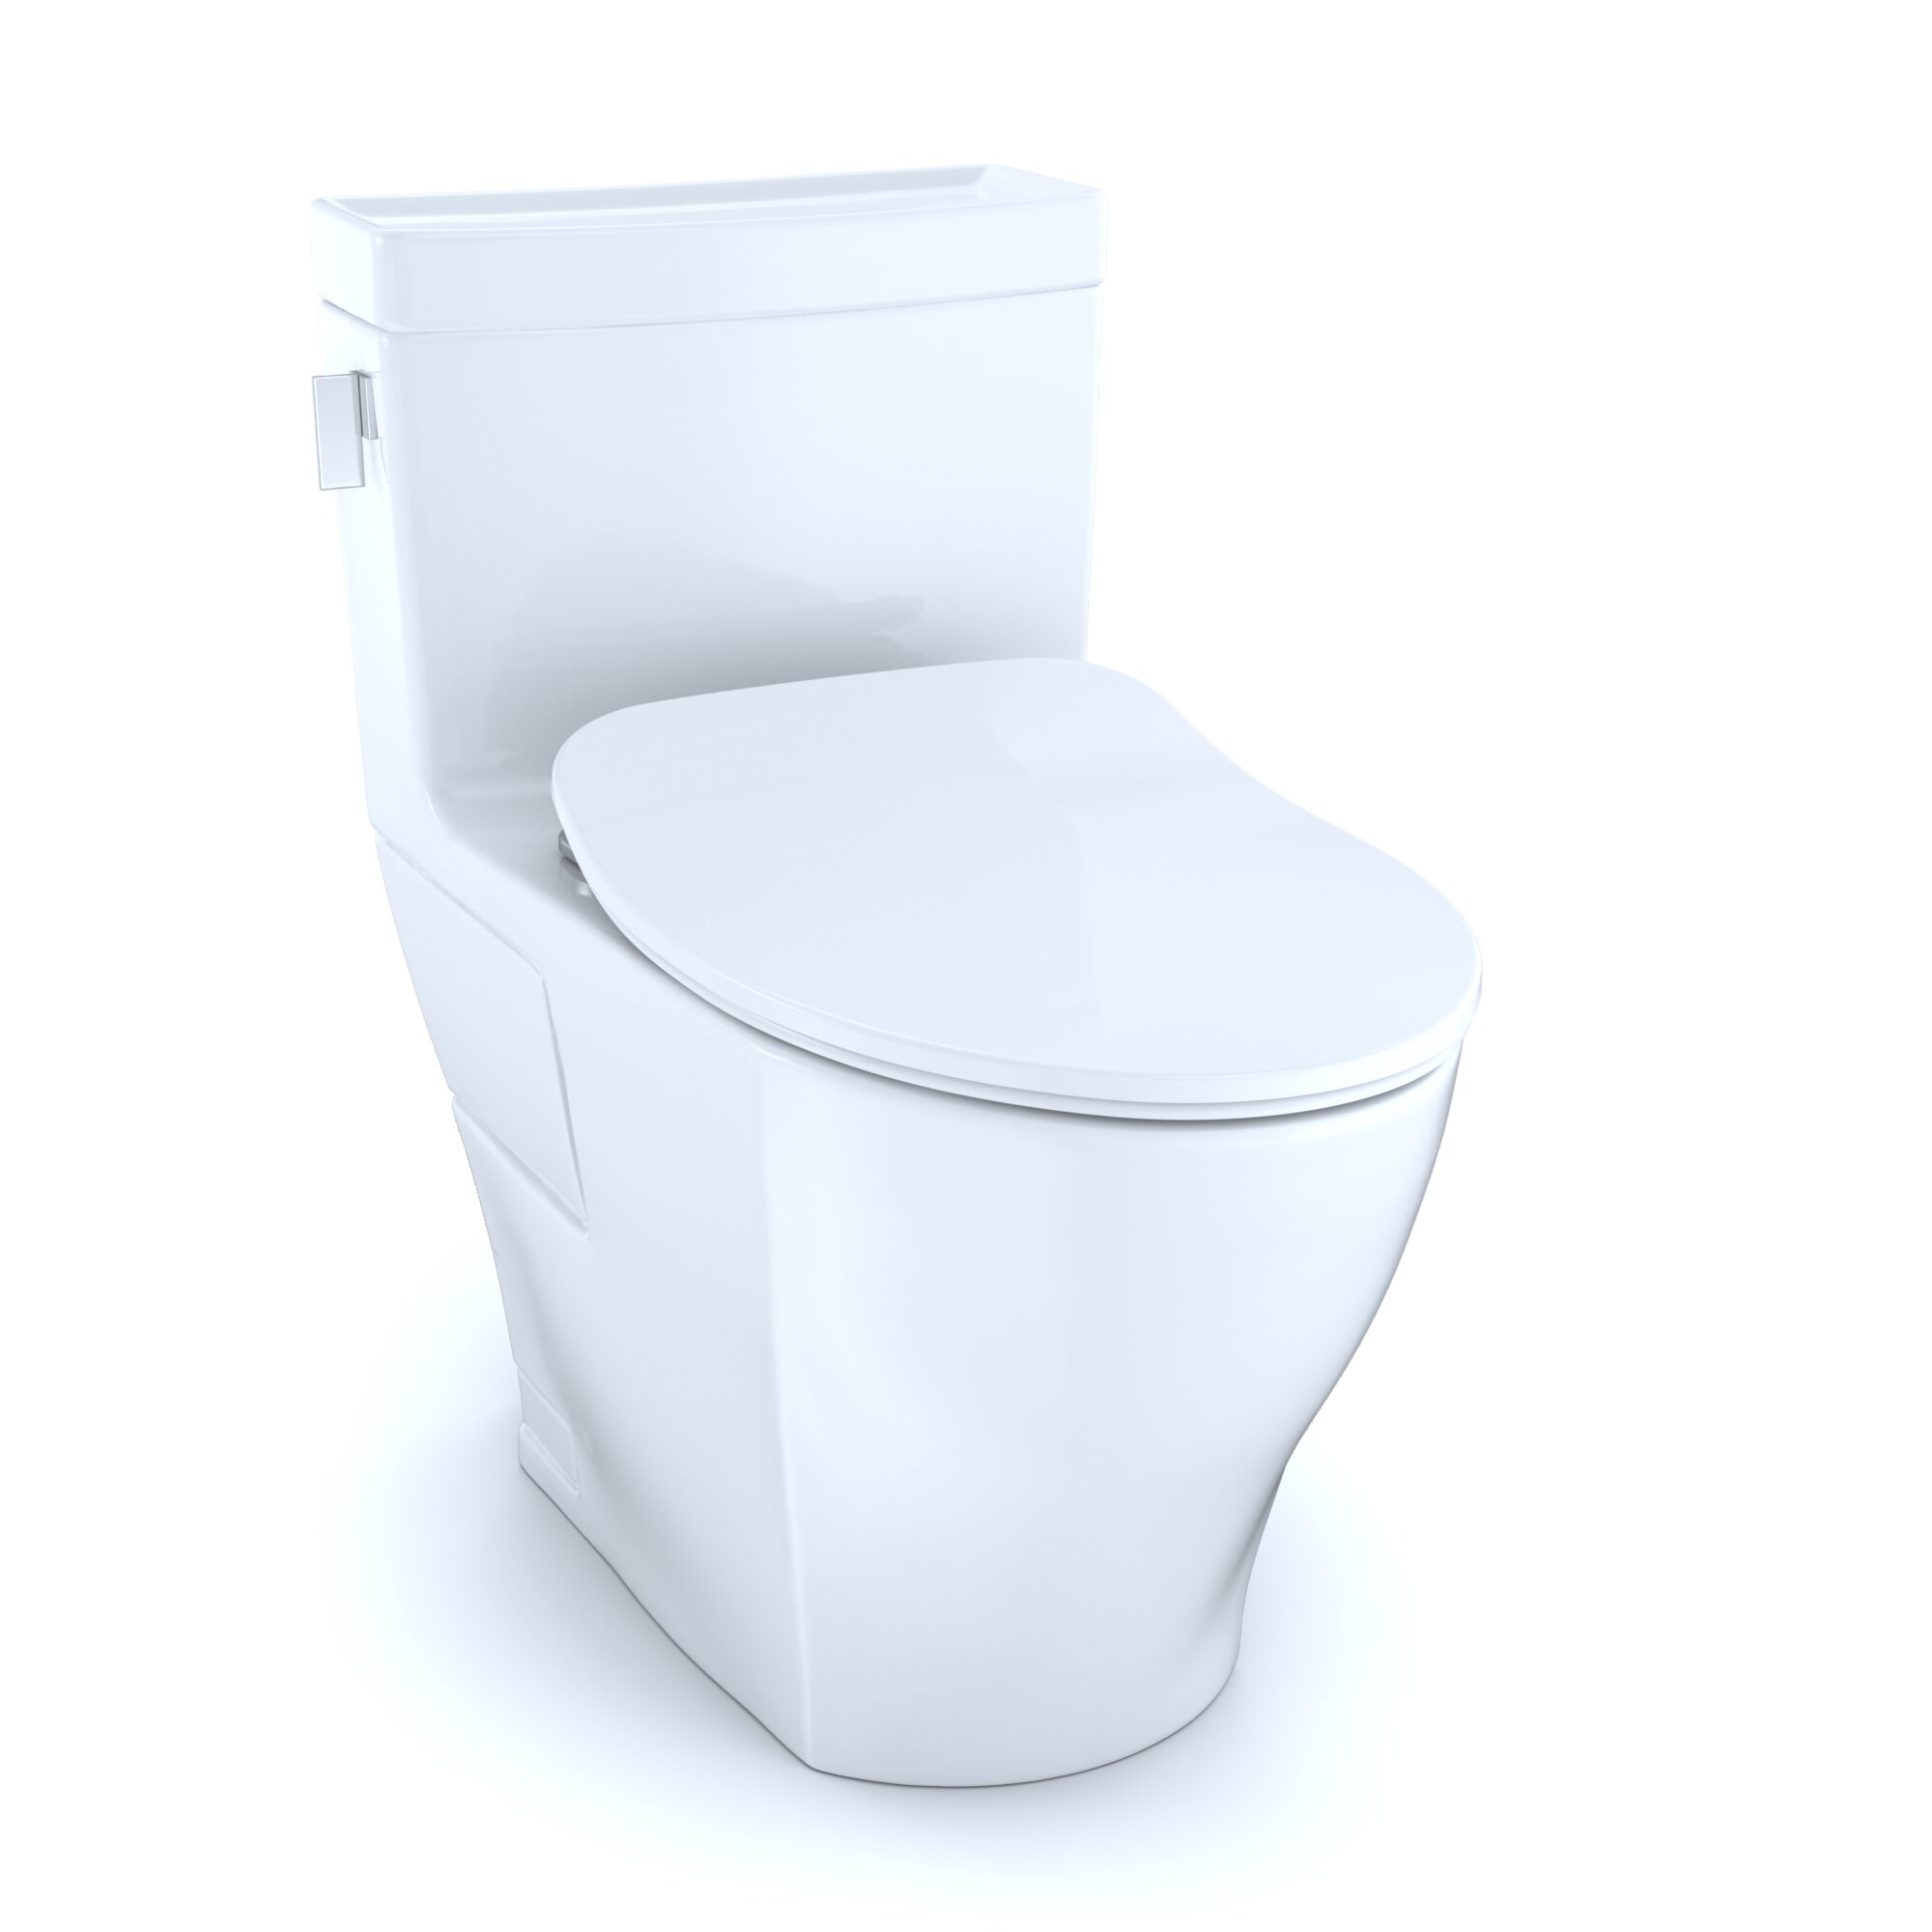 Toto Legato® 1.28 GPF (Water Efficient) Elongated One-Piece Toilet ...